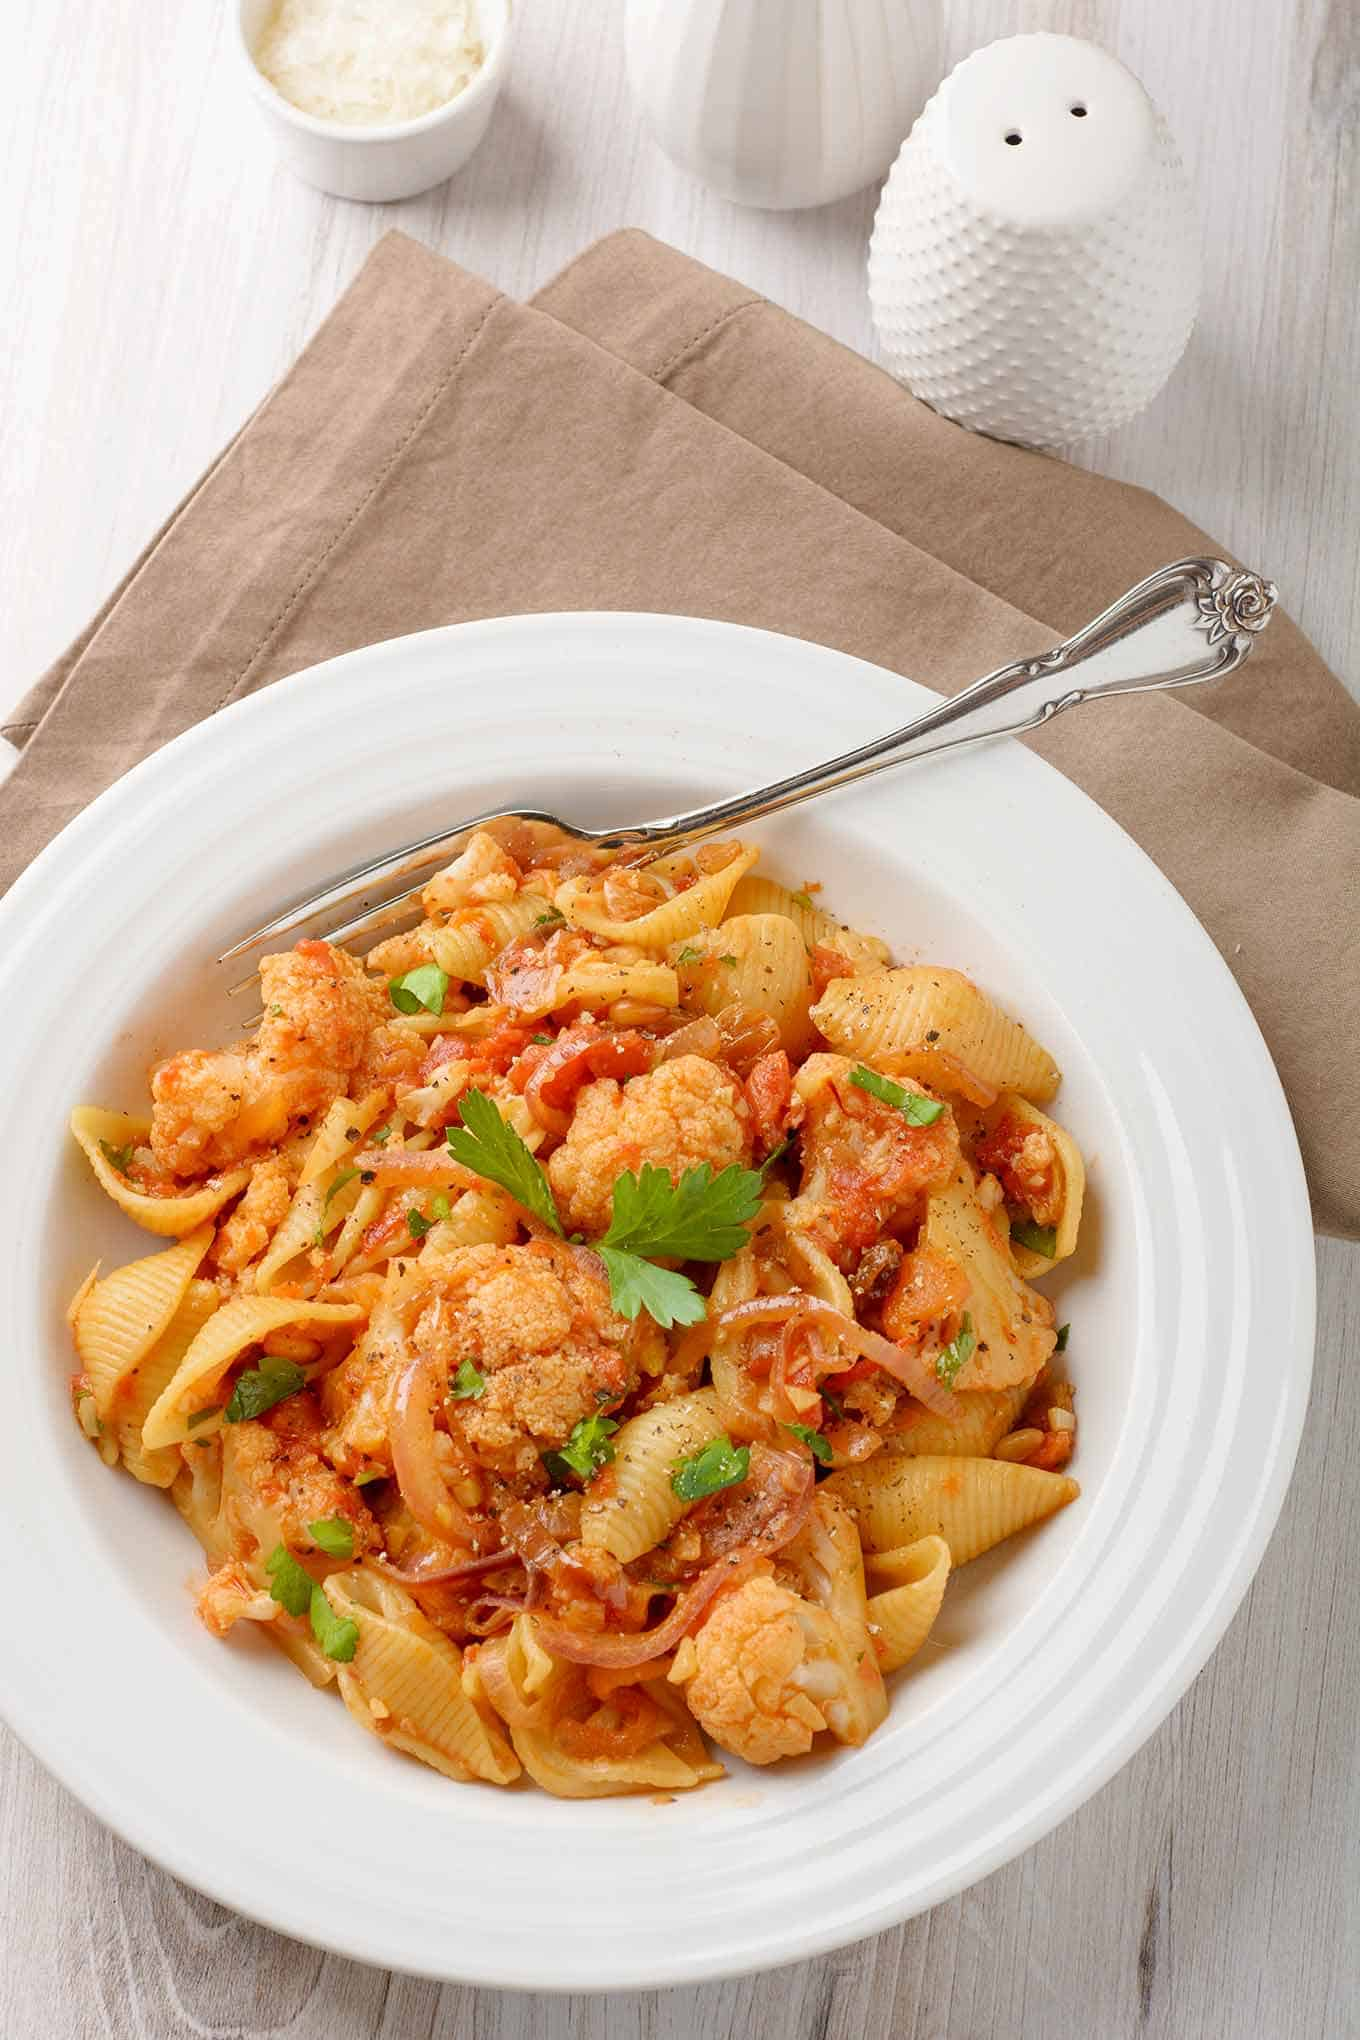 A bowl of pasta shells tossed with Sicilian tomato and cauliflower sauce, and a cloth napkin and grated cheese in the background.